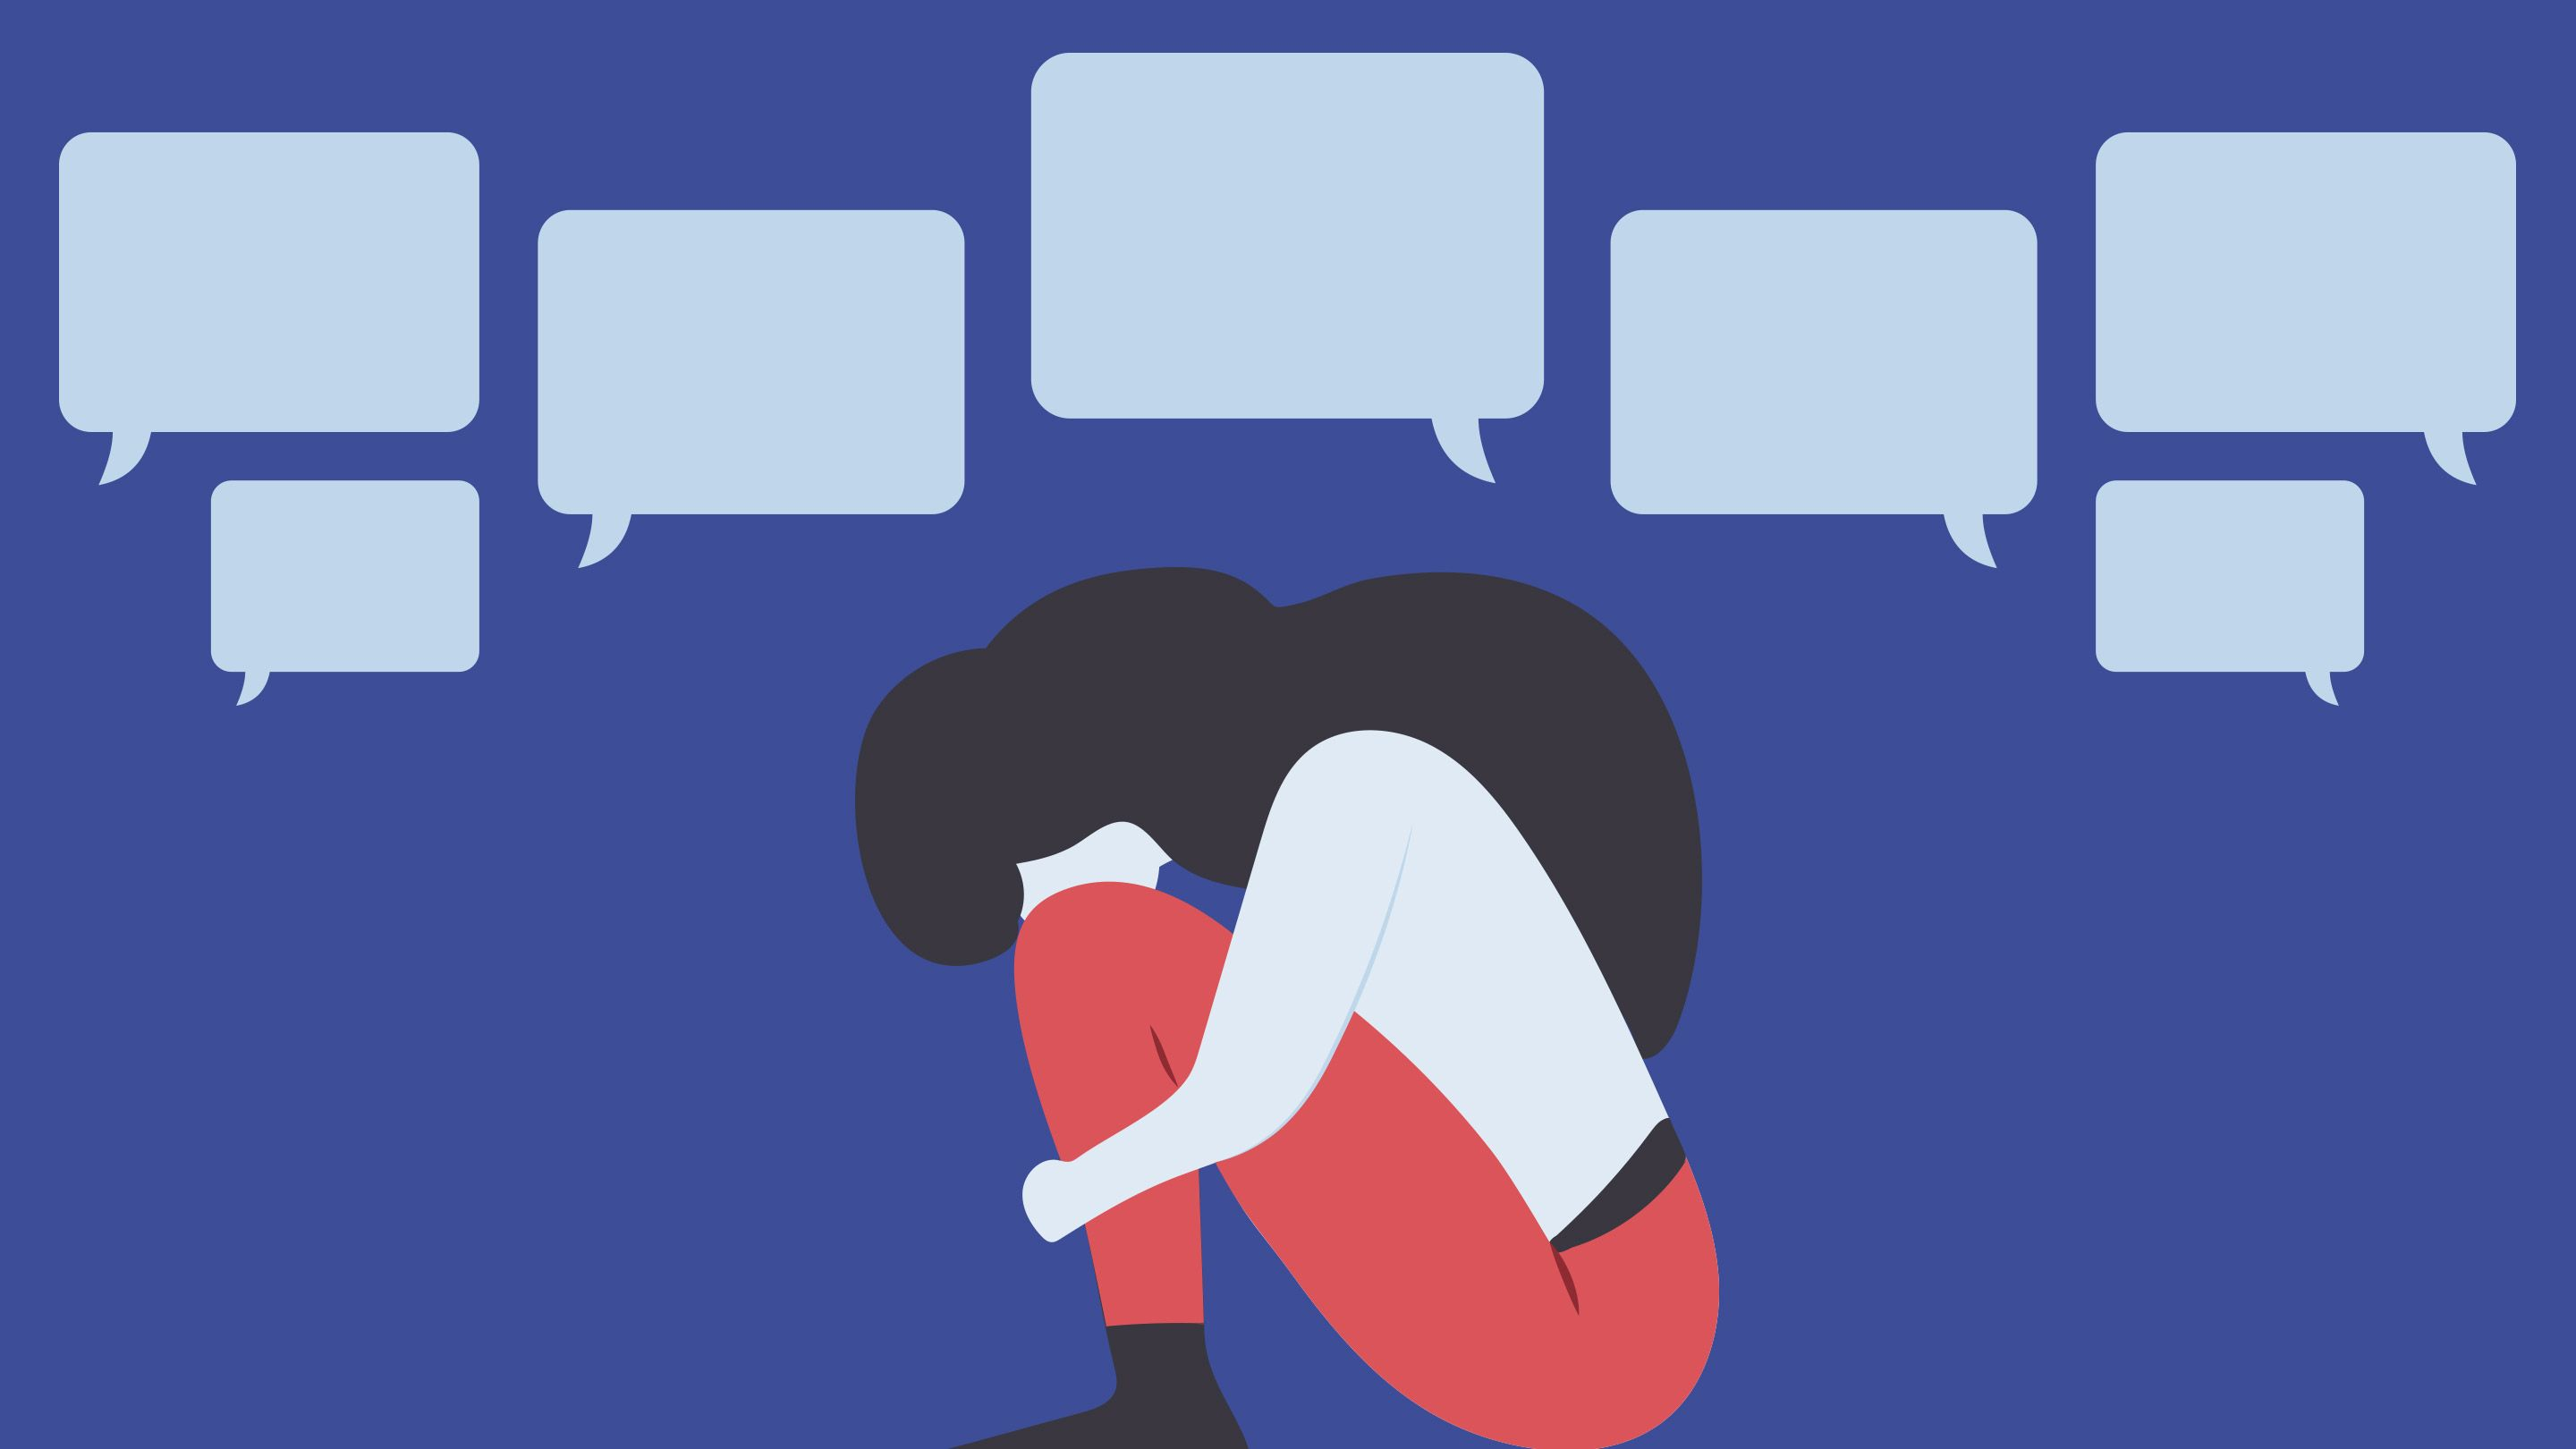 An illustration of a young woman crouched on the ground with her head in her knees and empty dialogue boxes above her.